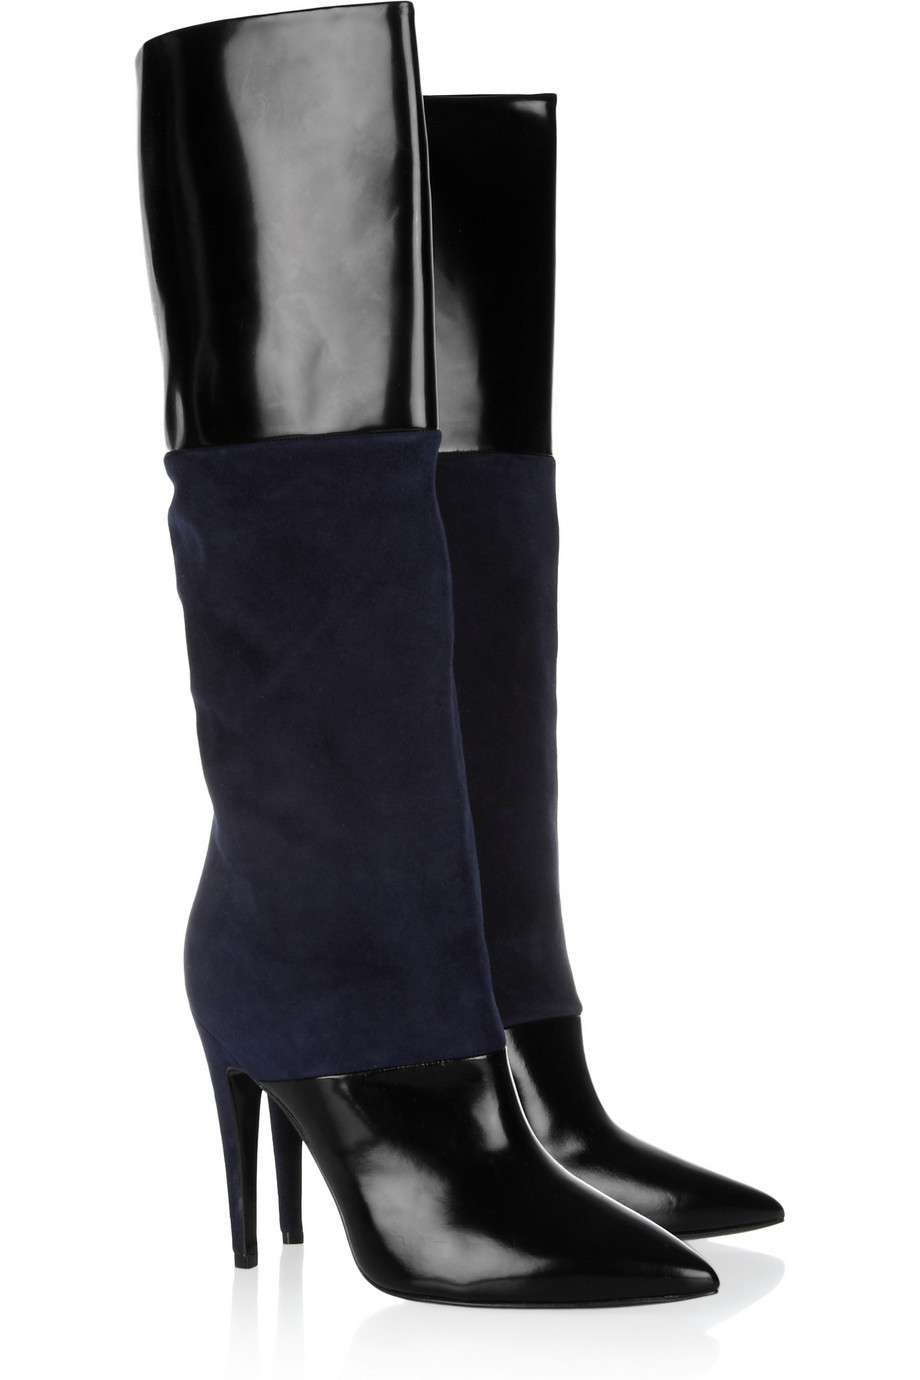 popular black patent leather boots buy cheap black patent